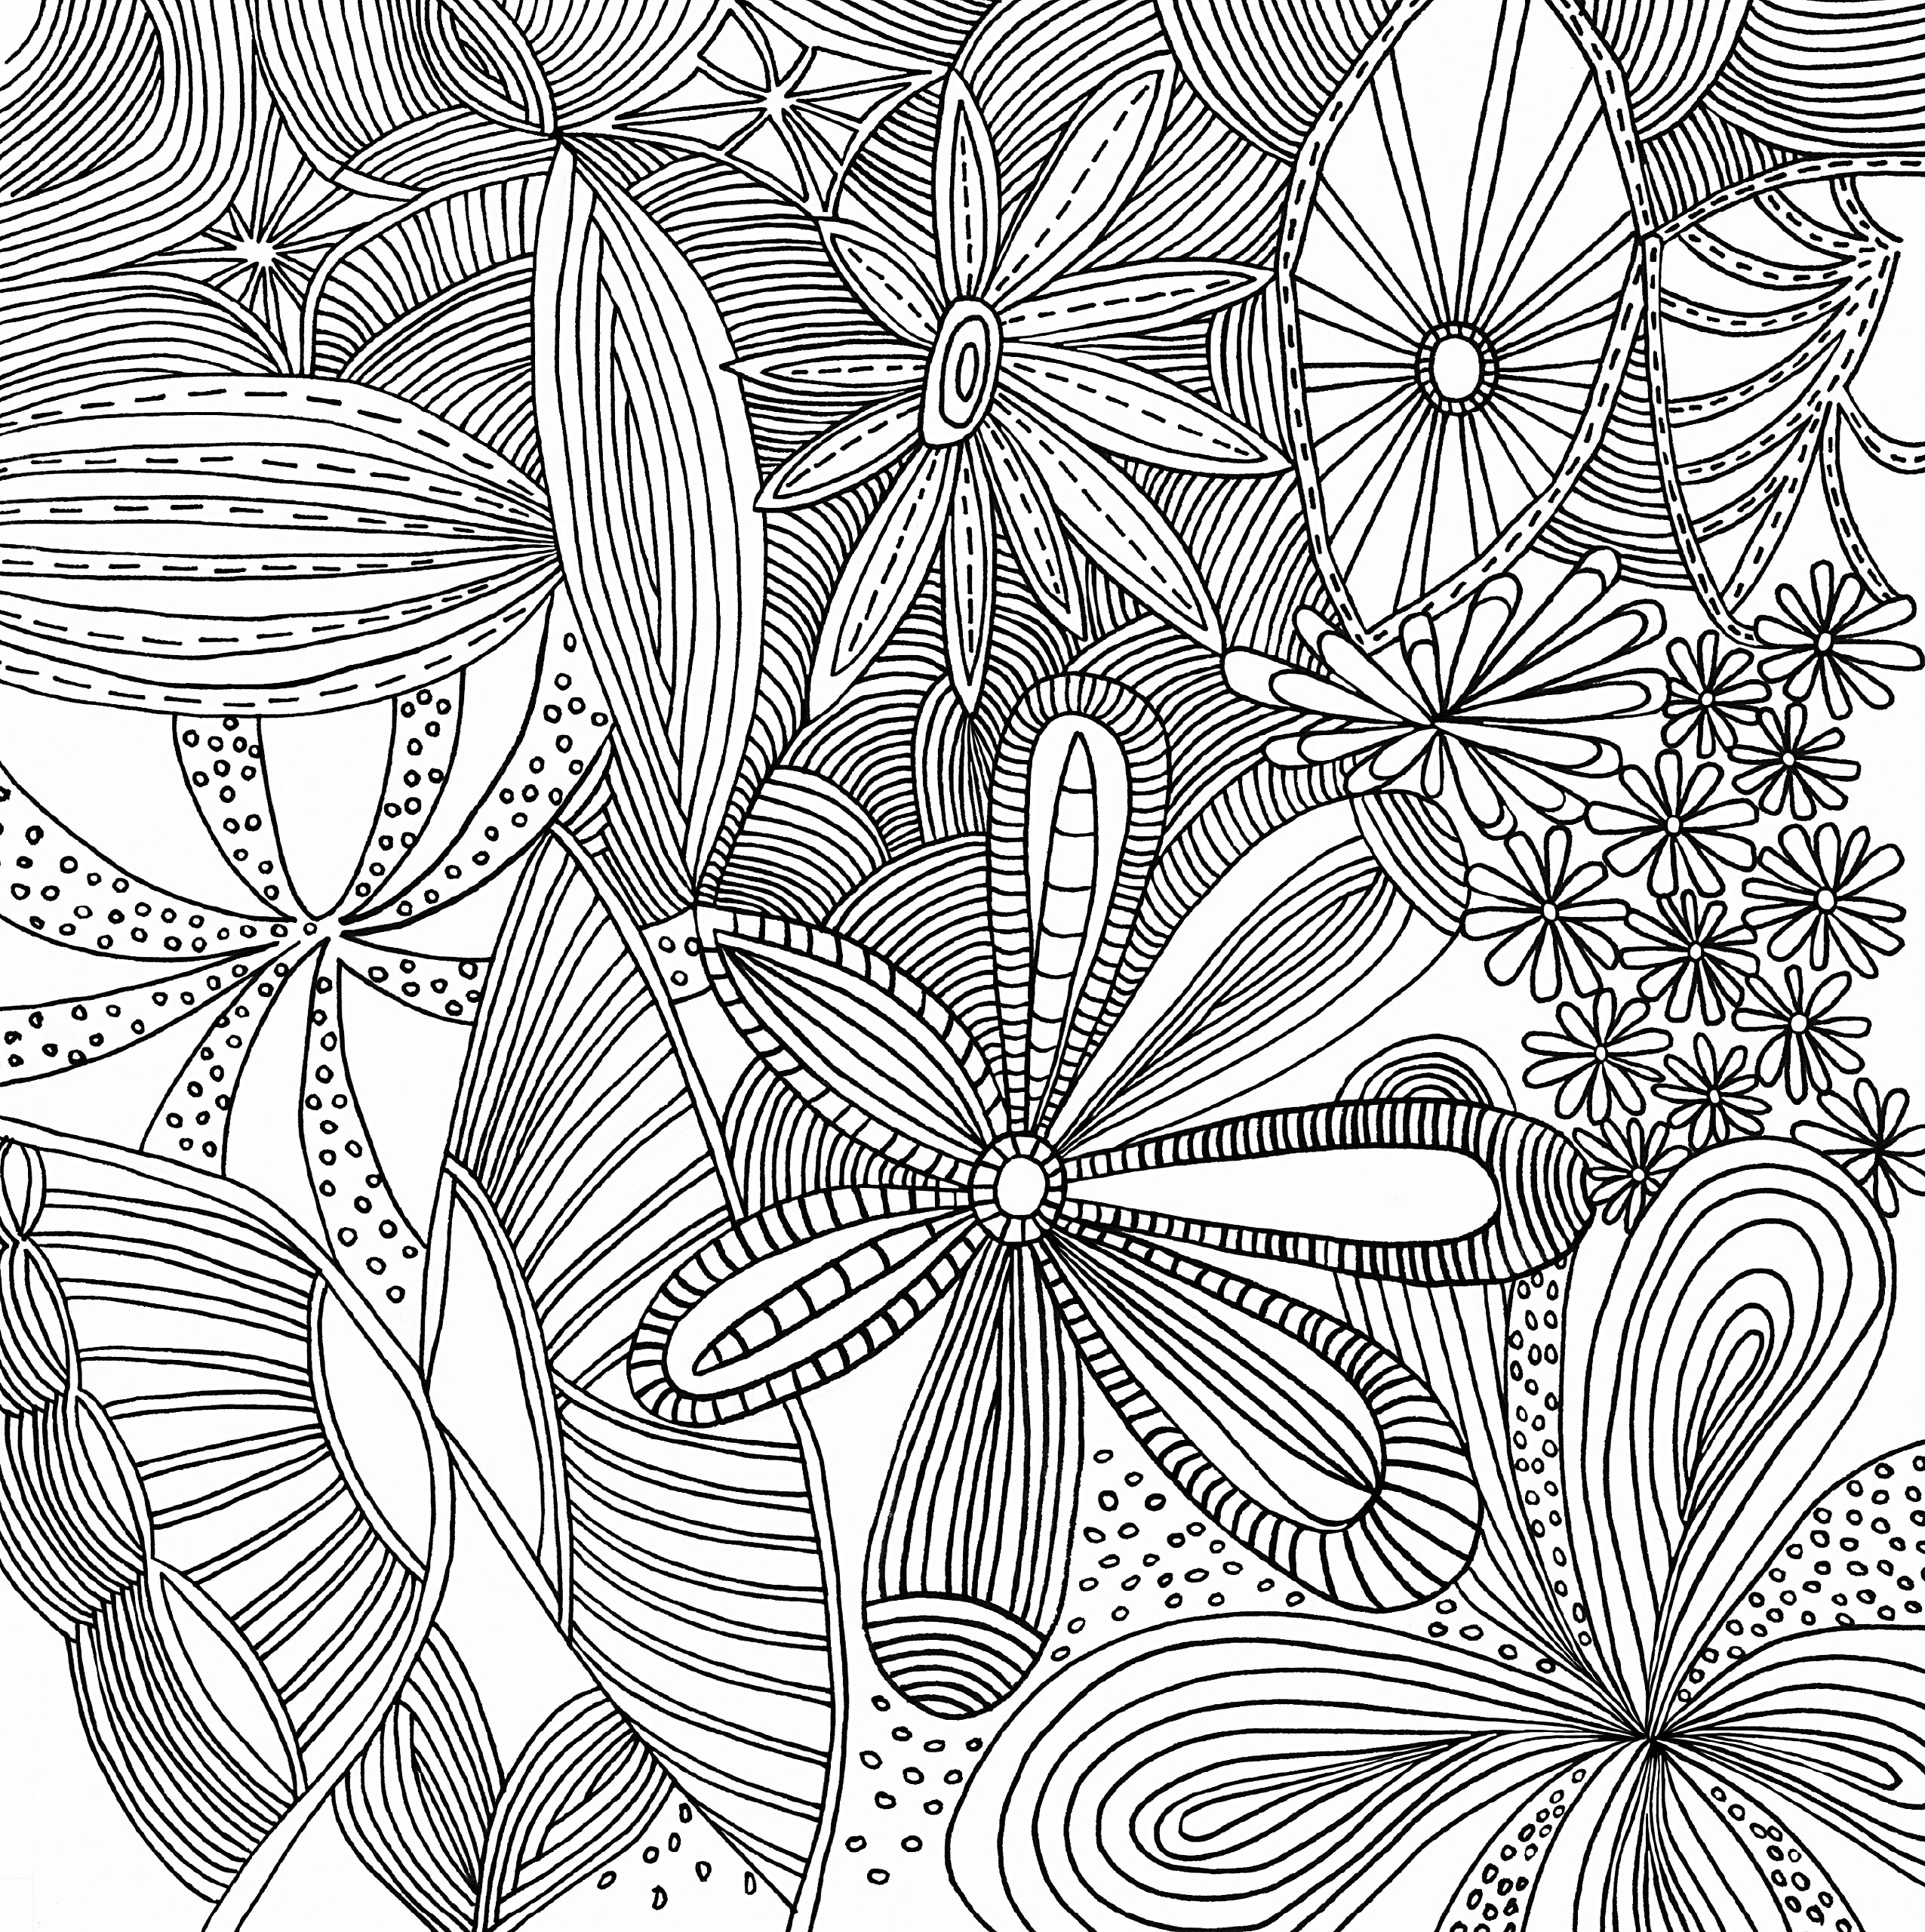 Serenity Adult Coloring Book stress relieving designs Studio